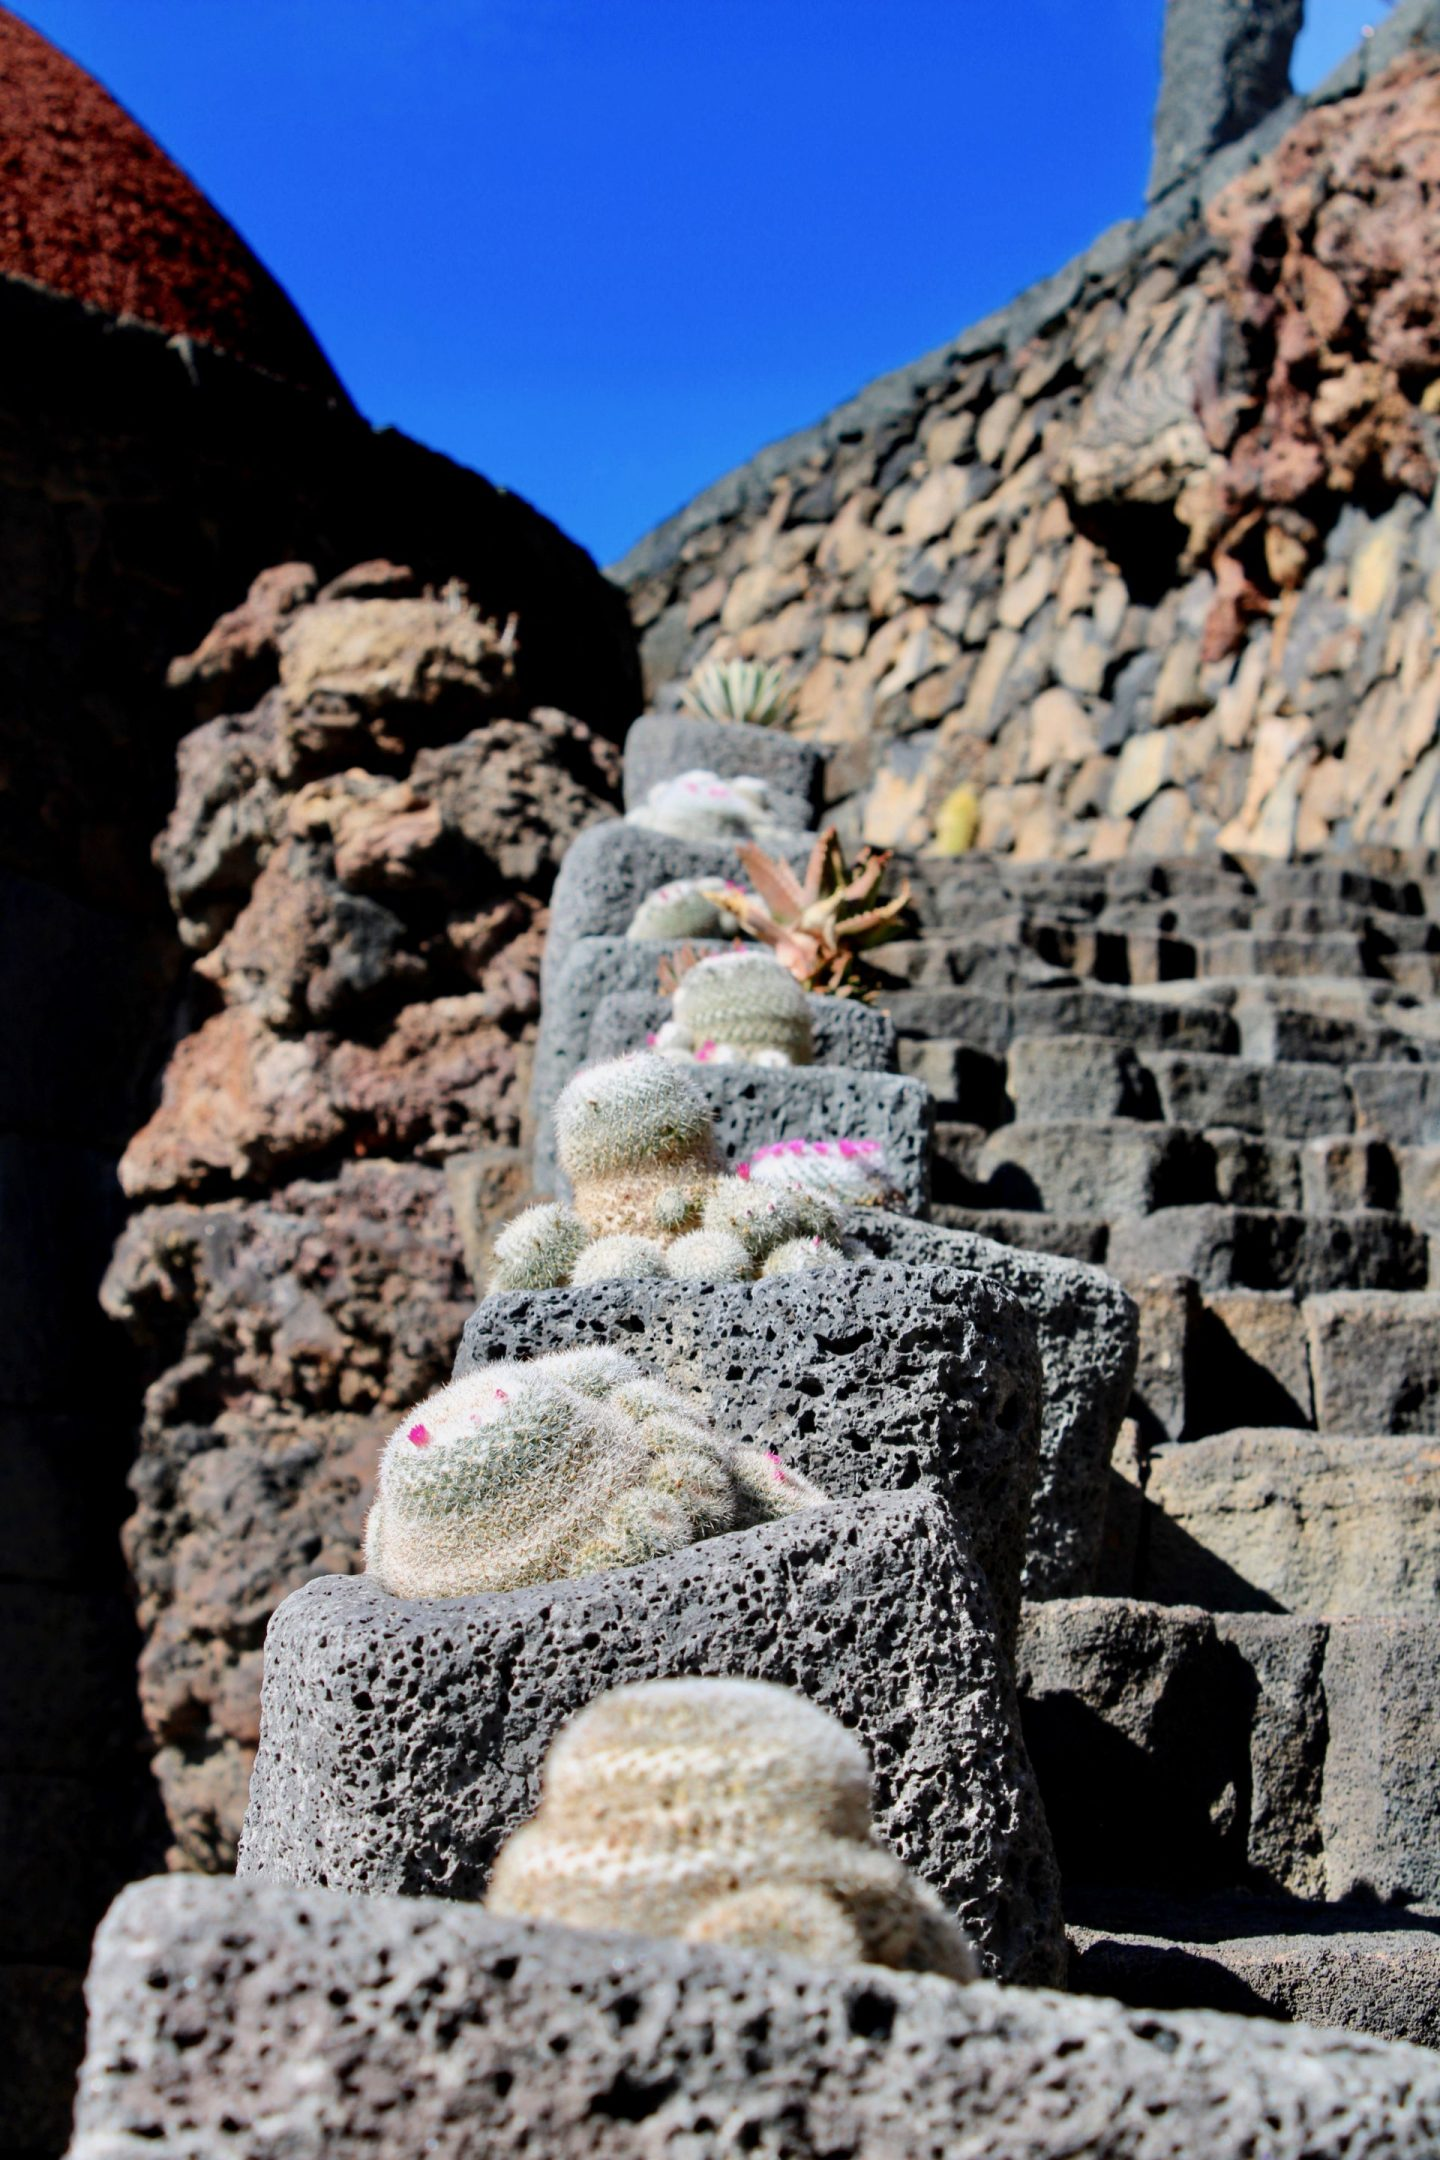 Things to do in Lanzarote: Cactus garden showing small cacti plants up the side of some stone steps, and a bright blue sky in the background